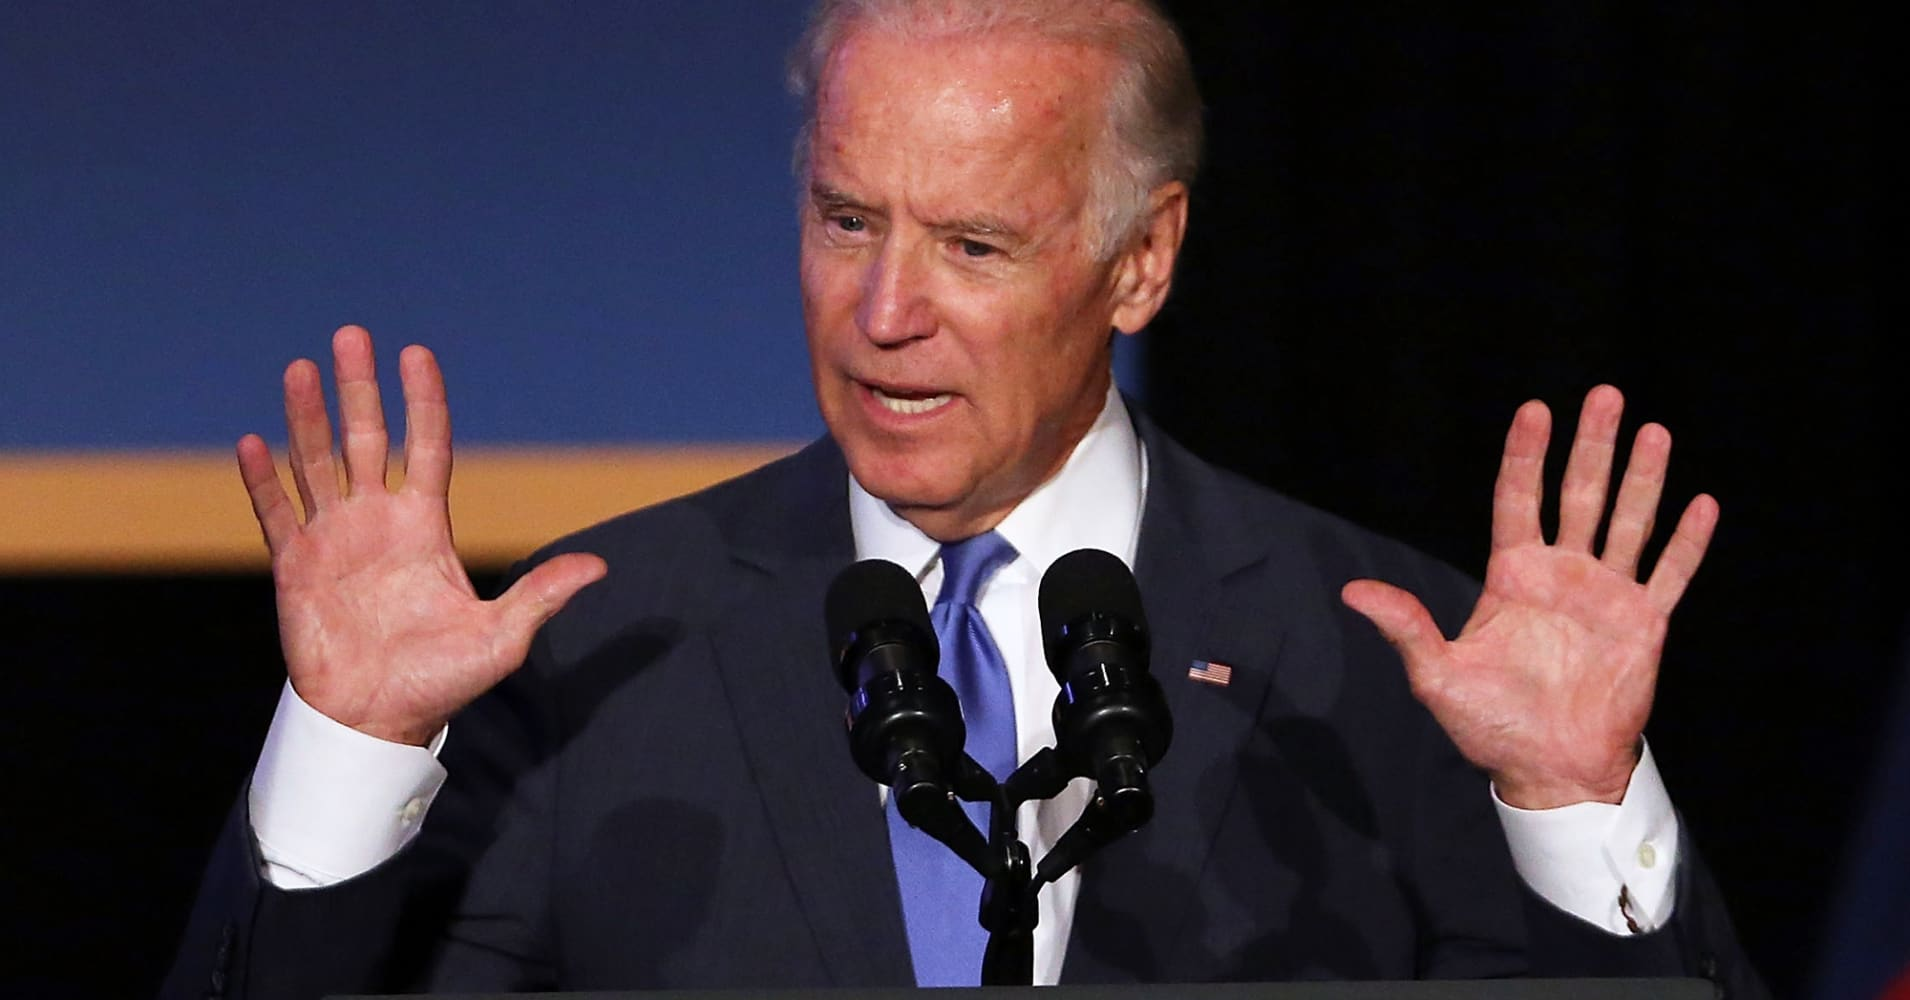 3 lessons you can learn from joe biden about overcoming obstacles